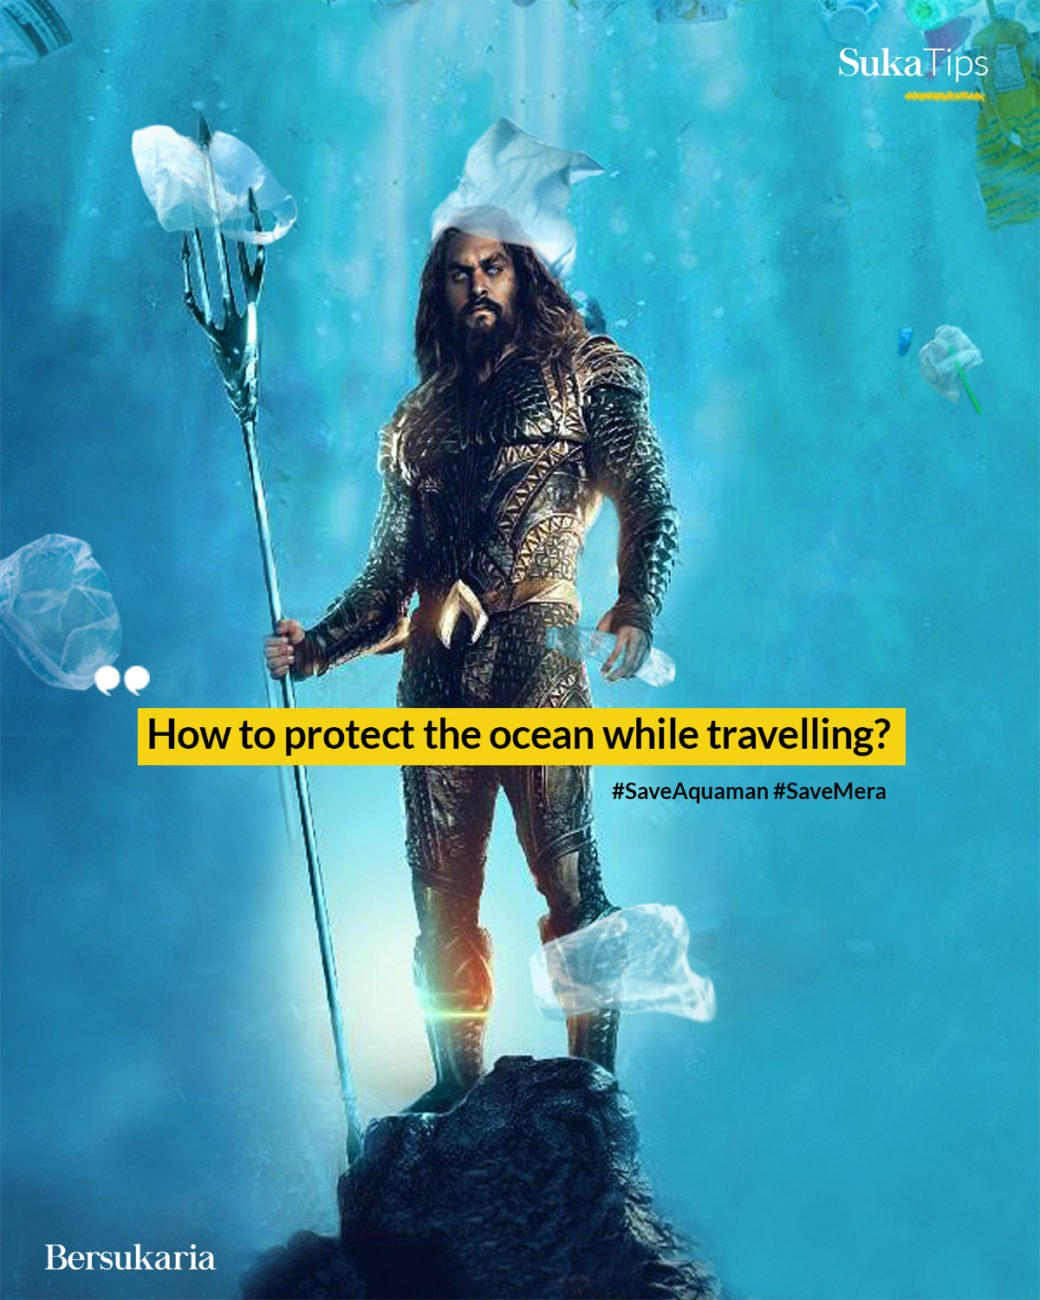 How to protect the ocean while travelling?